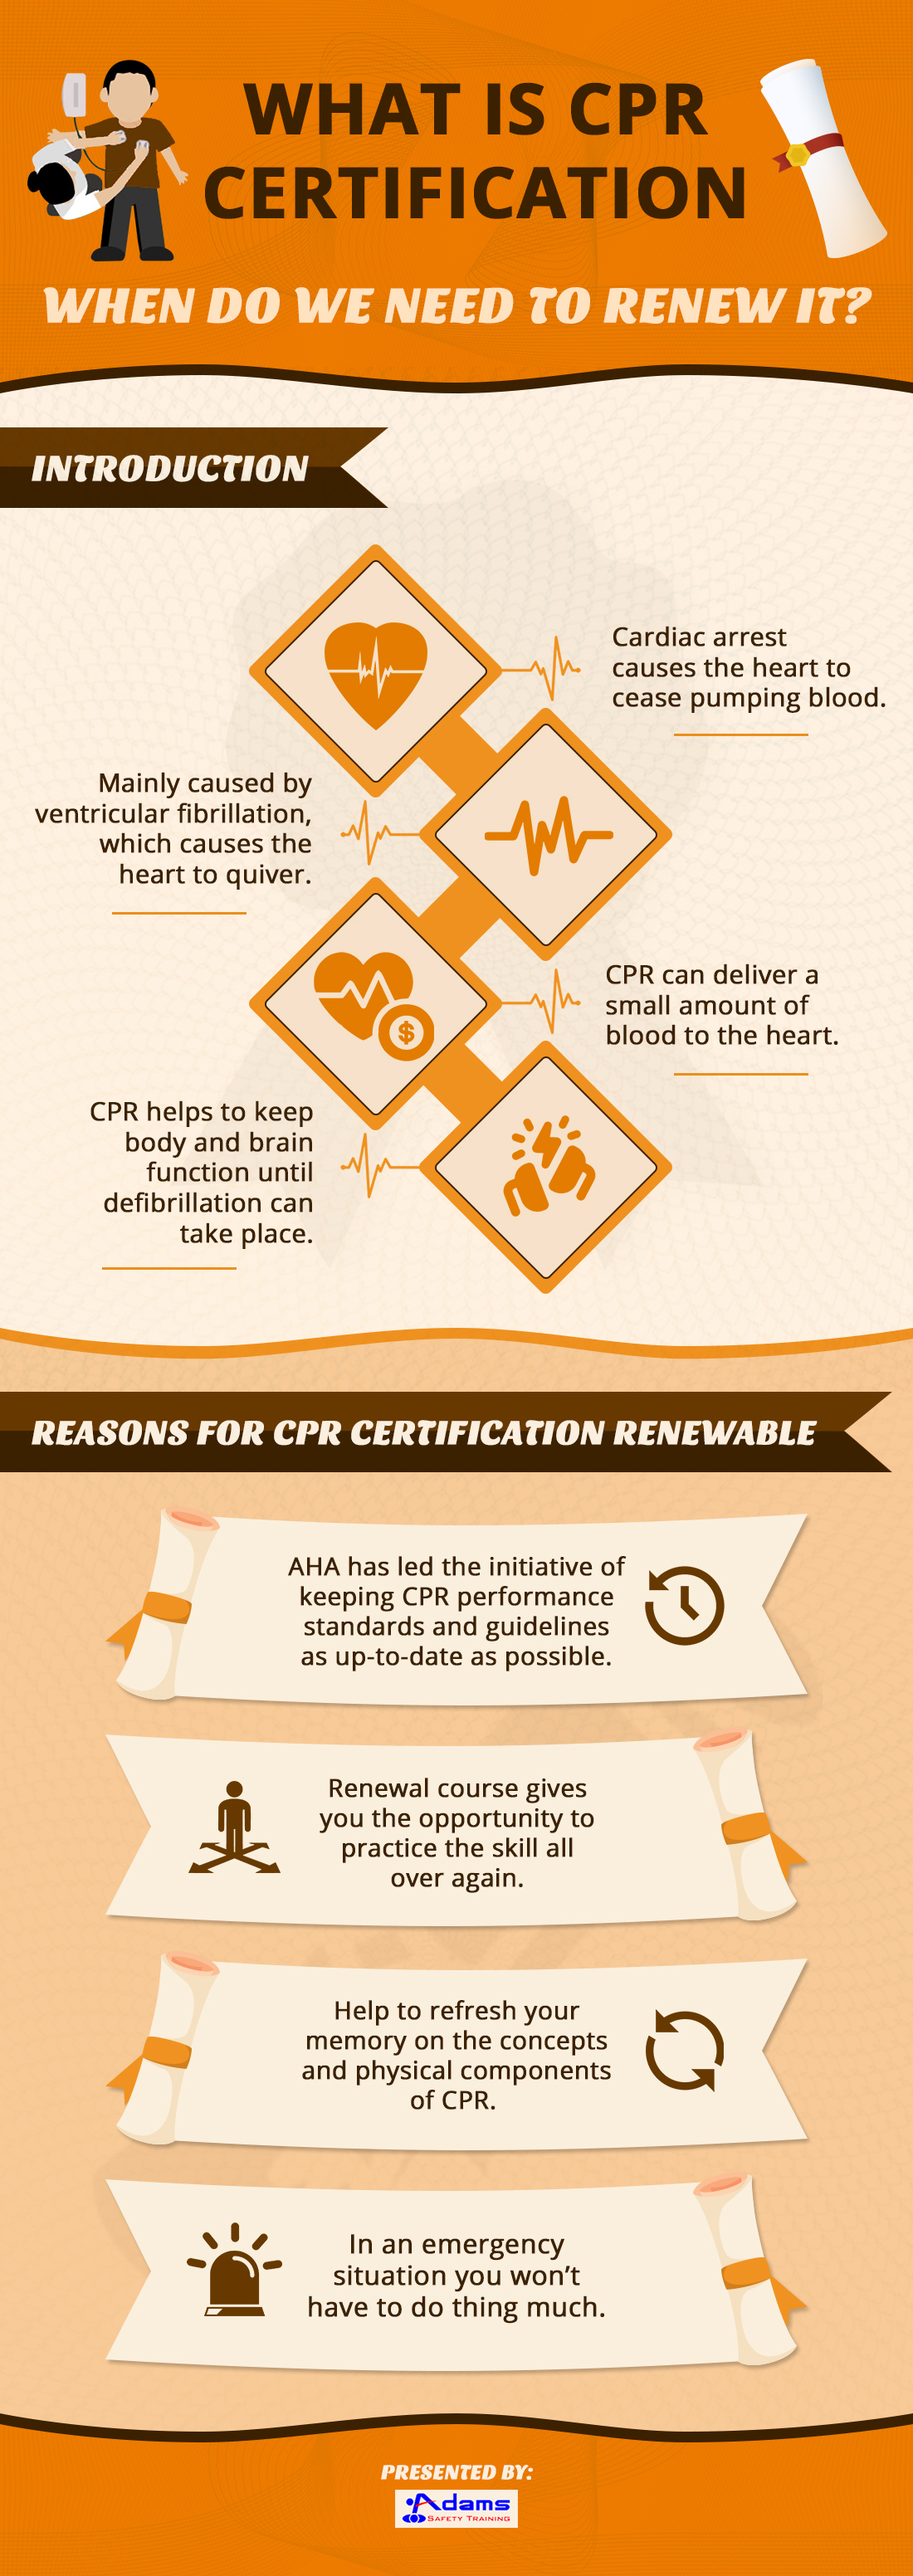 Why There Is Need To Renew Cpr Certification Adams Safety